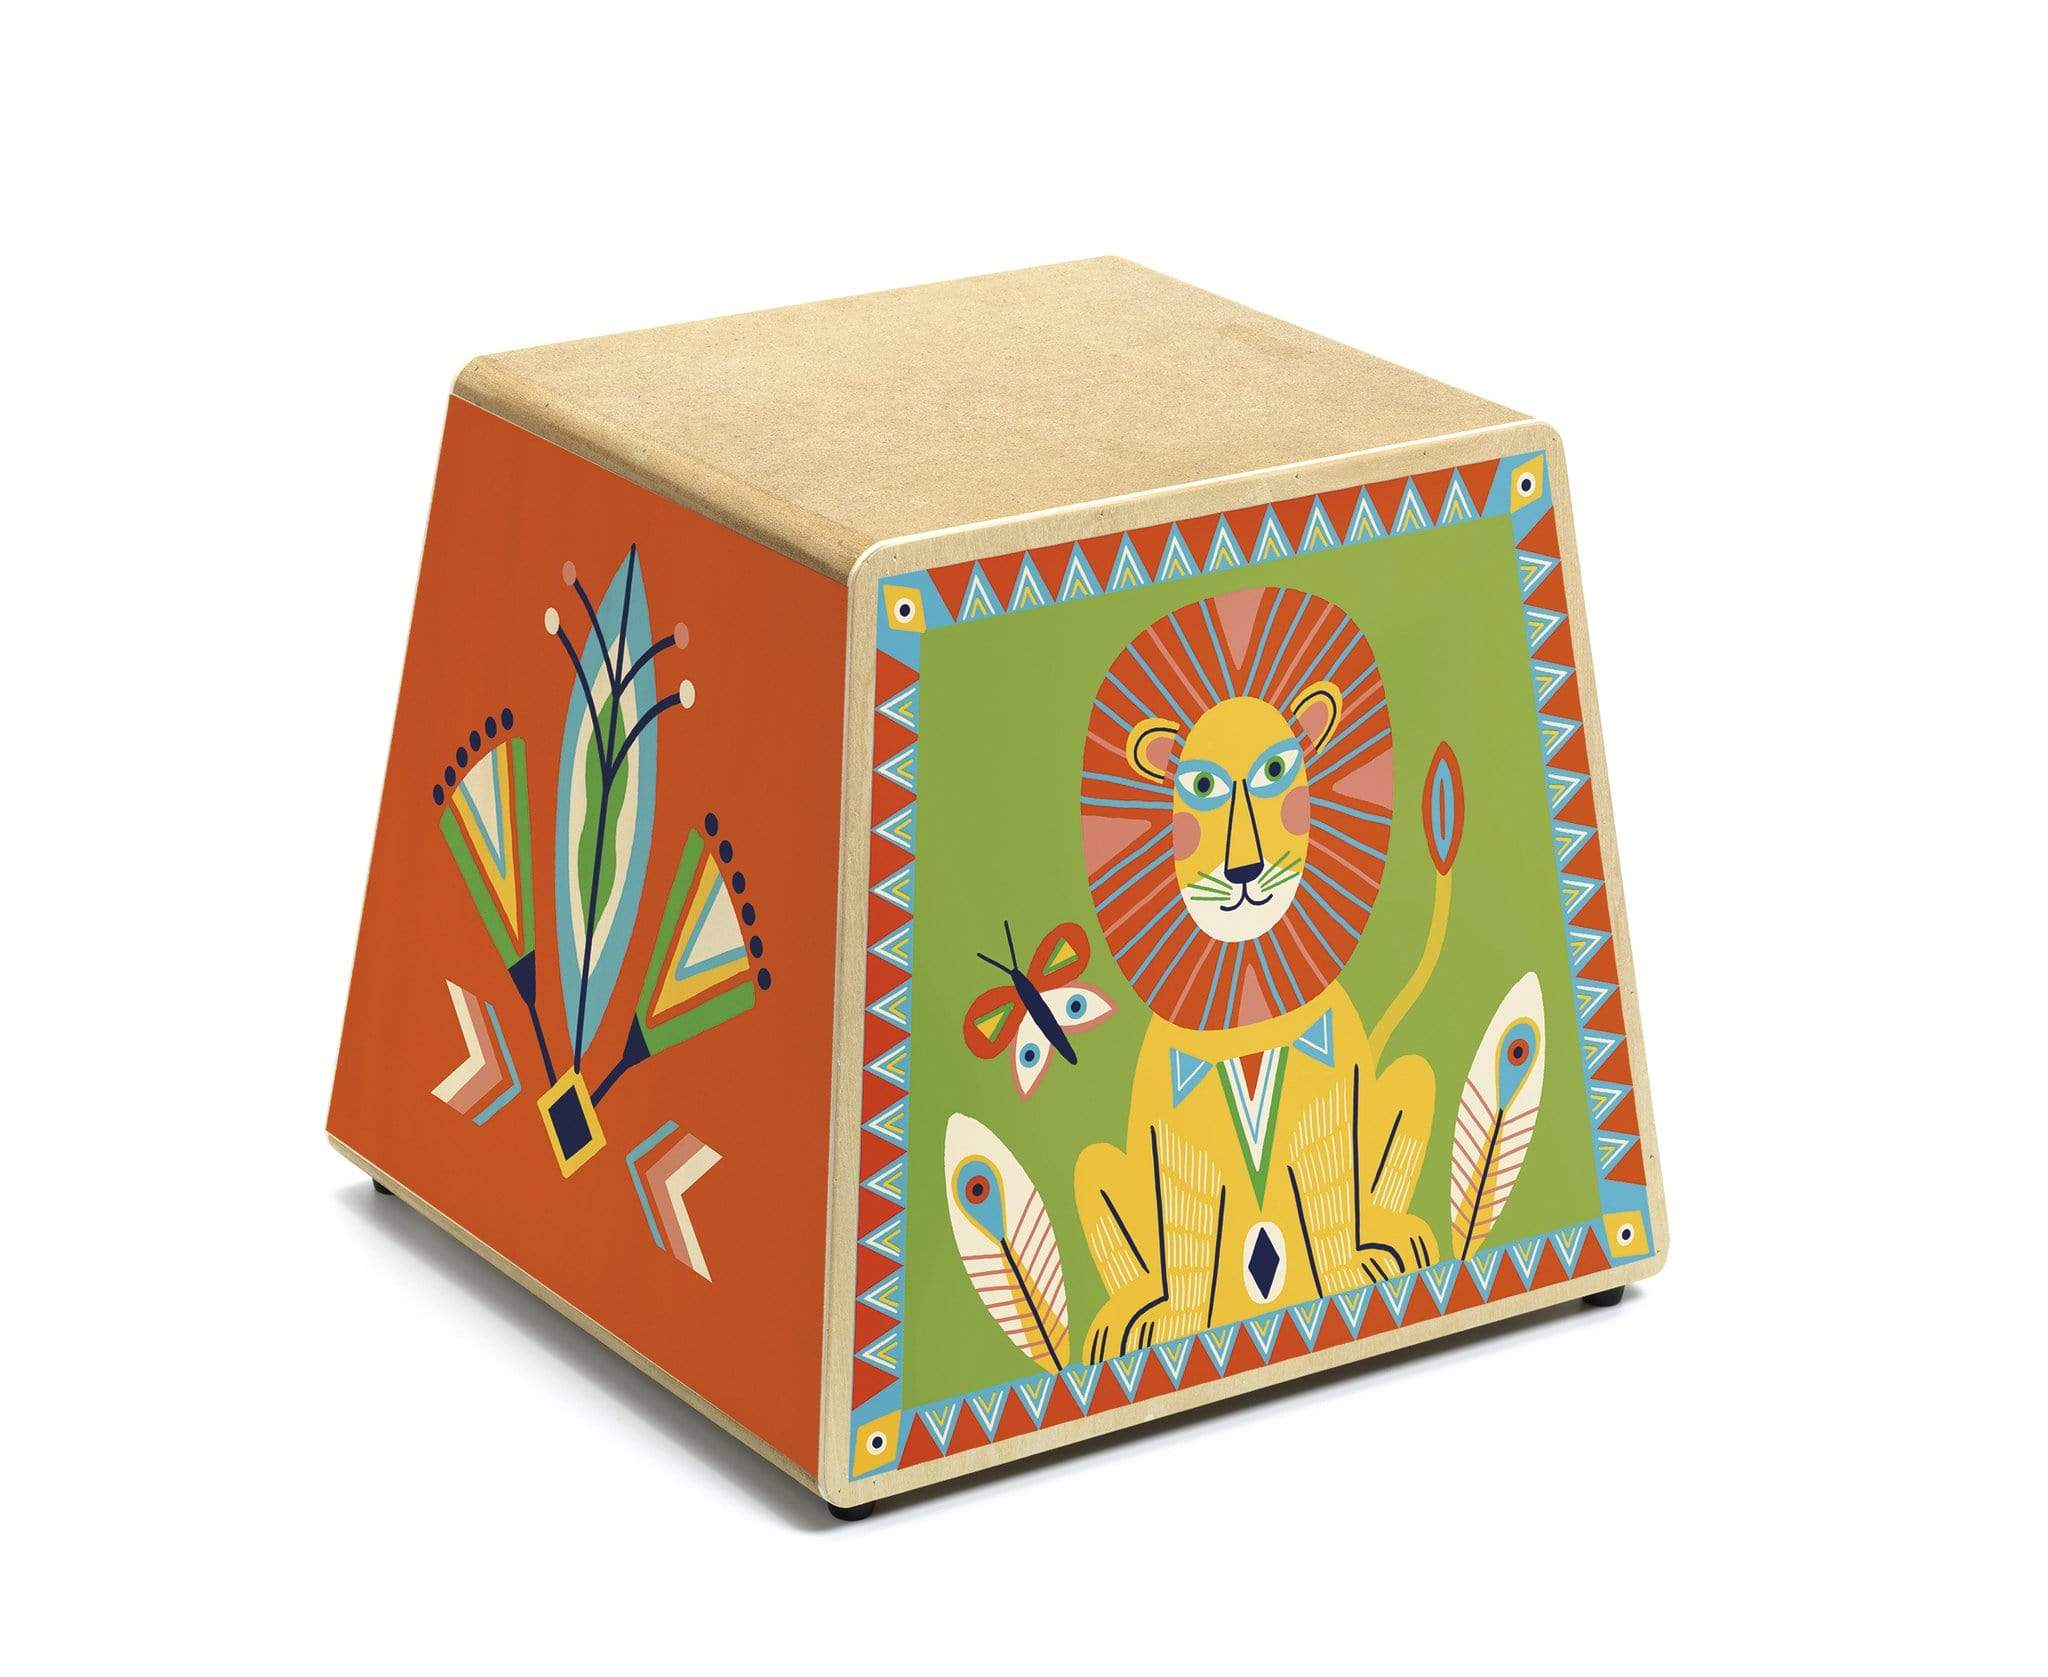 Djeco Animambo Cajon - Wooden Drum with Multiple Sounds